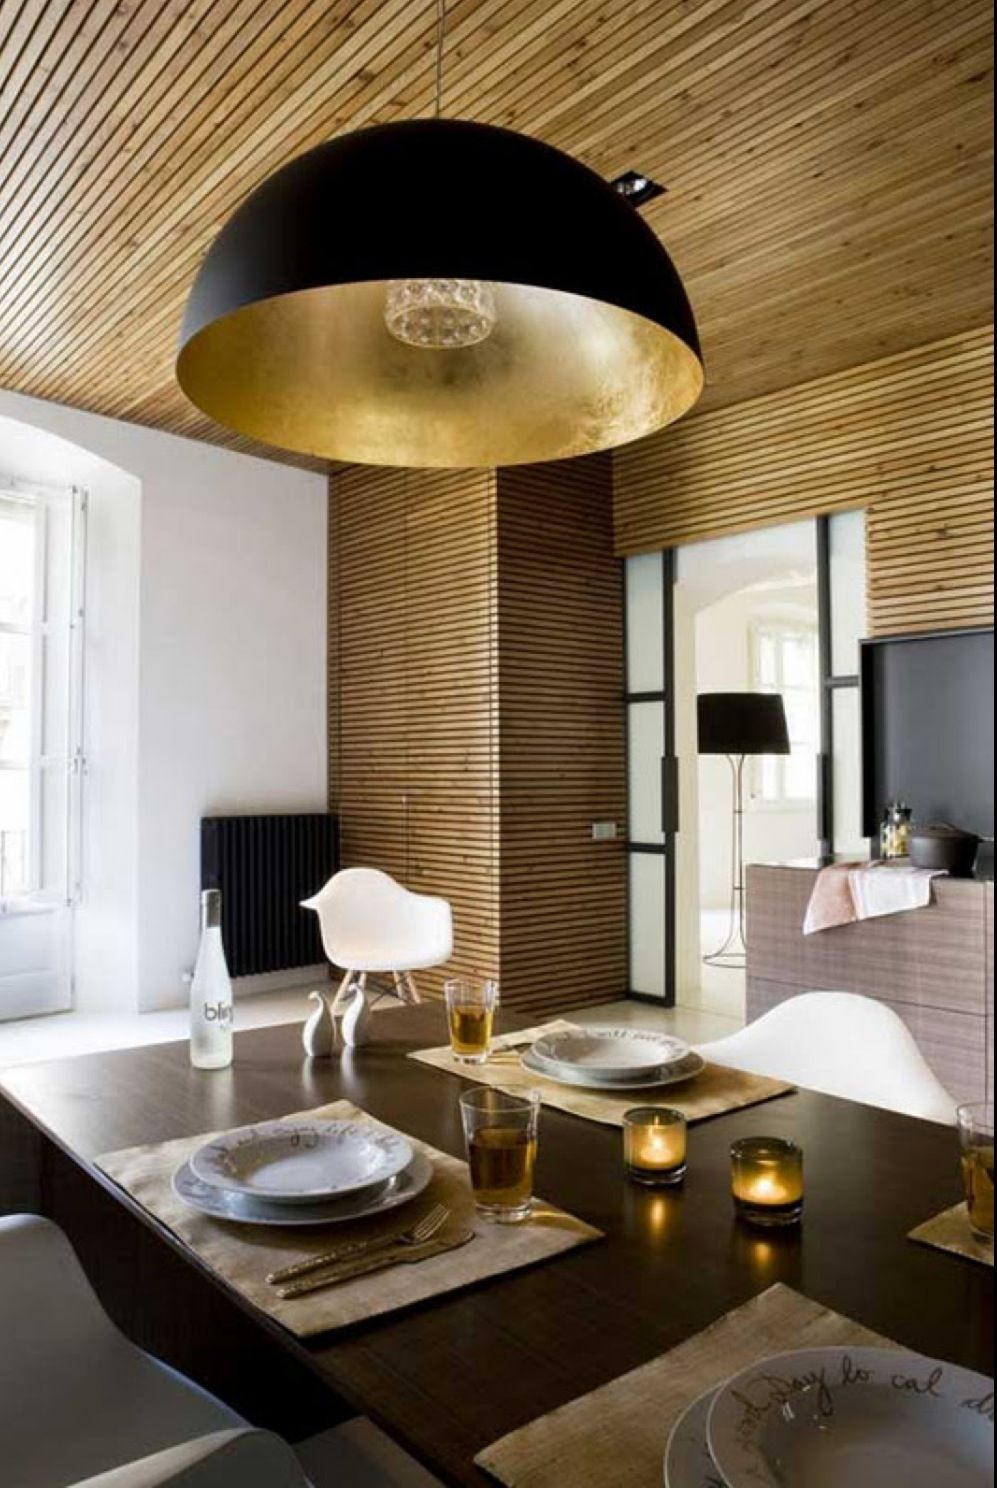 Black and gold pendant light. All that glitters...gold